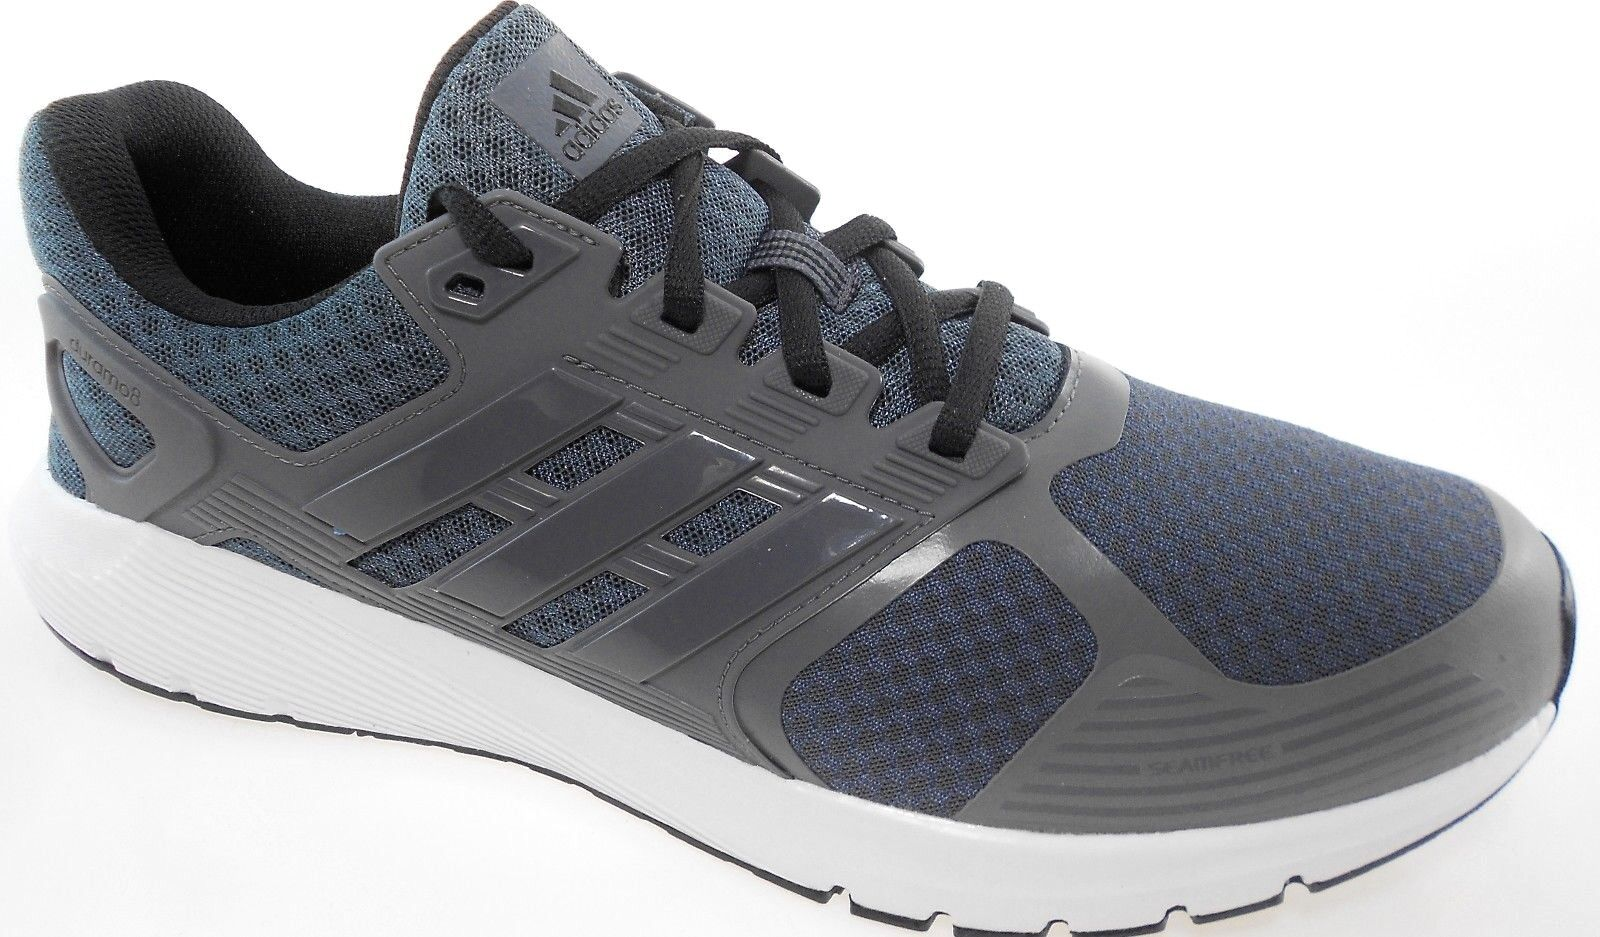 cc522651567 ADIDAS DURAMO 8 M CLOUDFOAM MEN S GREY RUNNING SHOES